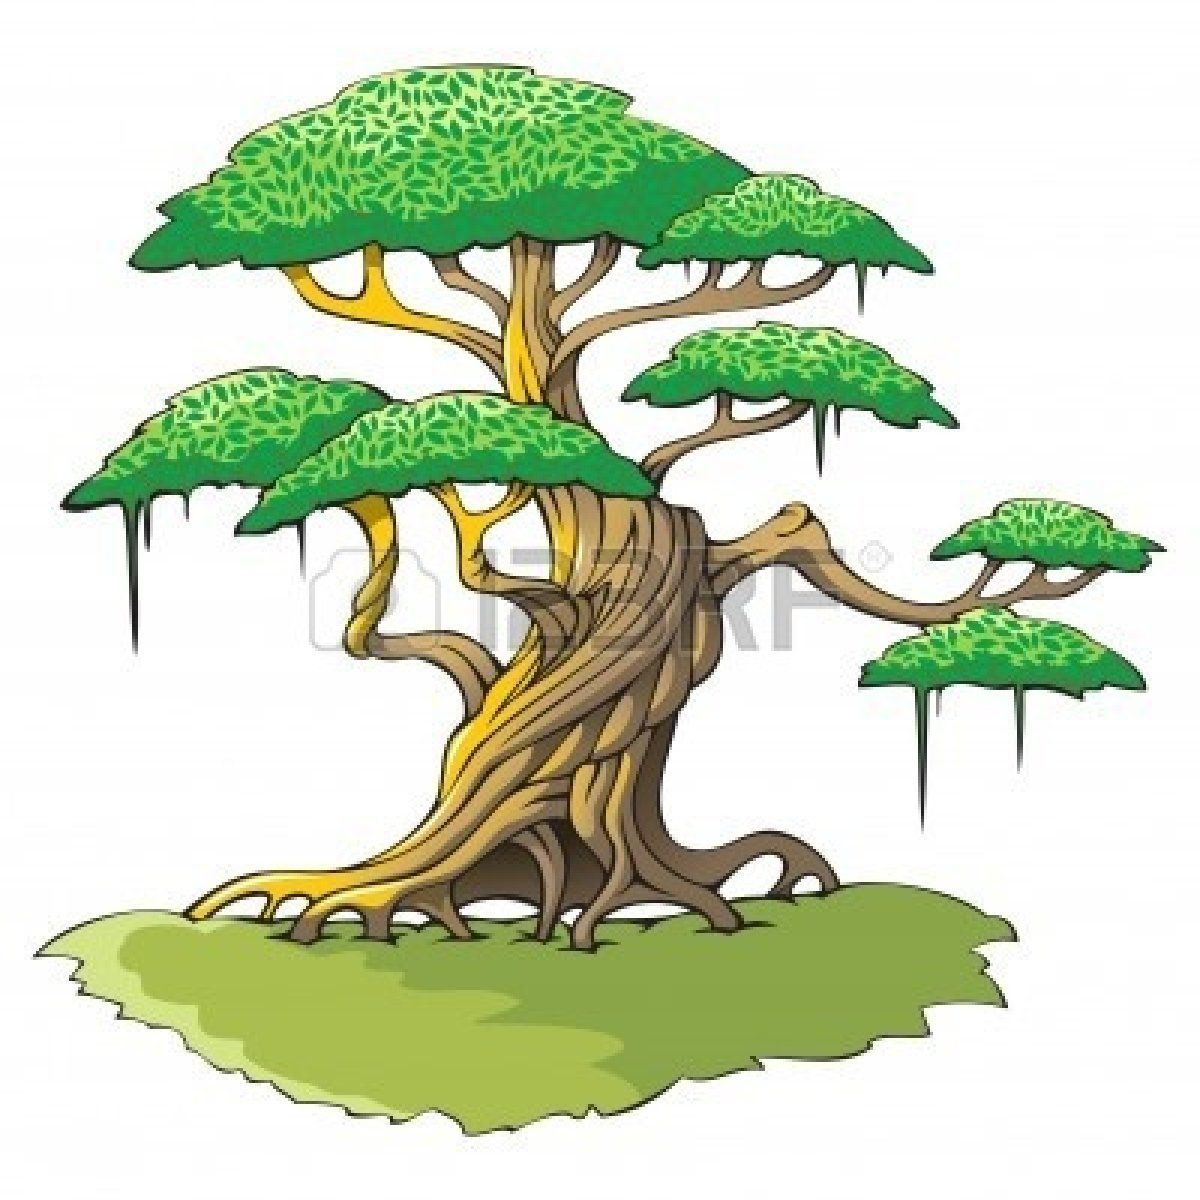 Jungle Tree Clipart Tree cutout : crooked tree.